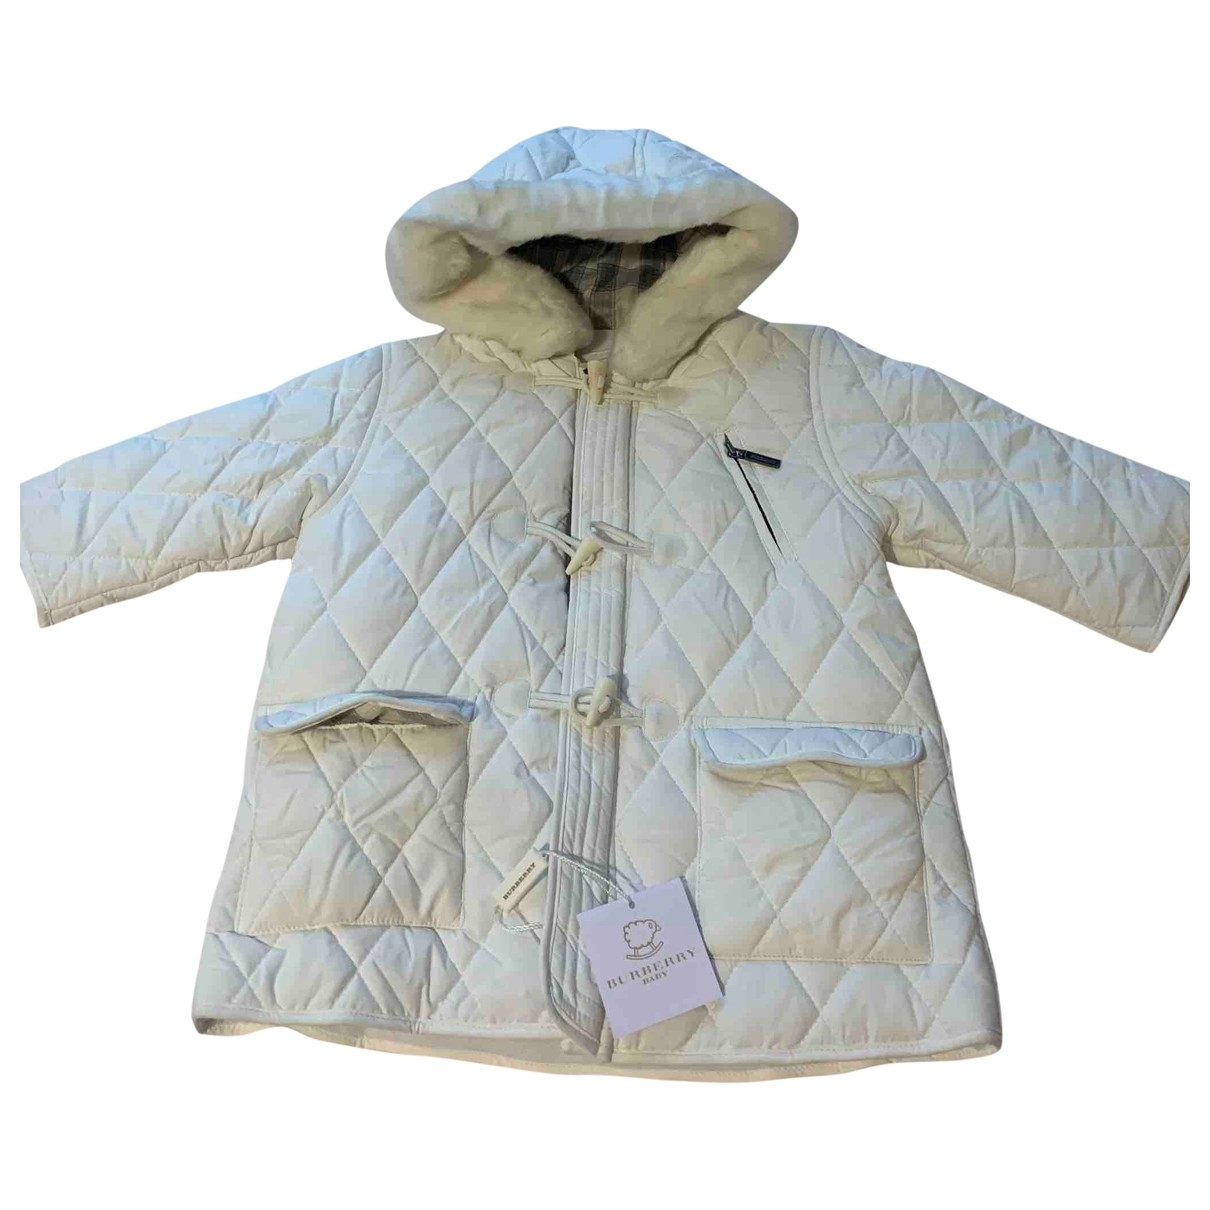 Burberry \N White Cotton jacket & coat for Kids 12 months - until 29 inches UK